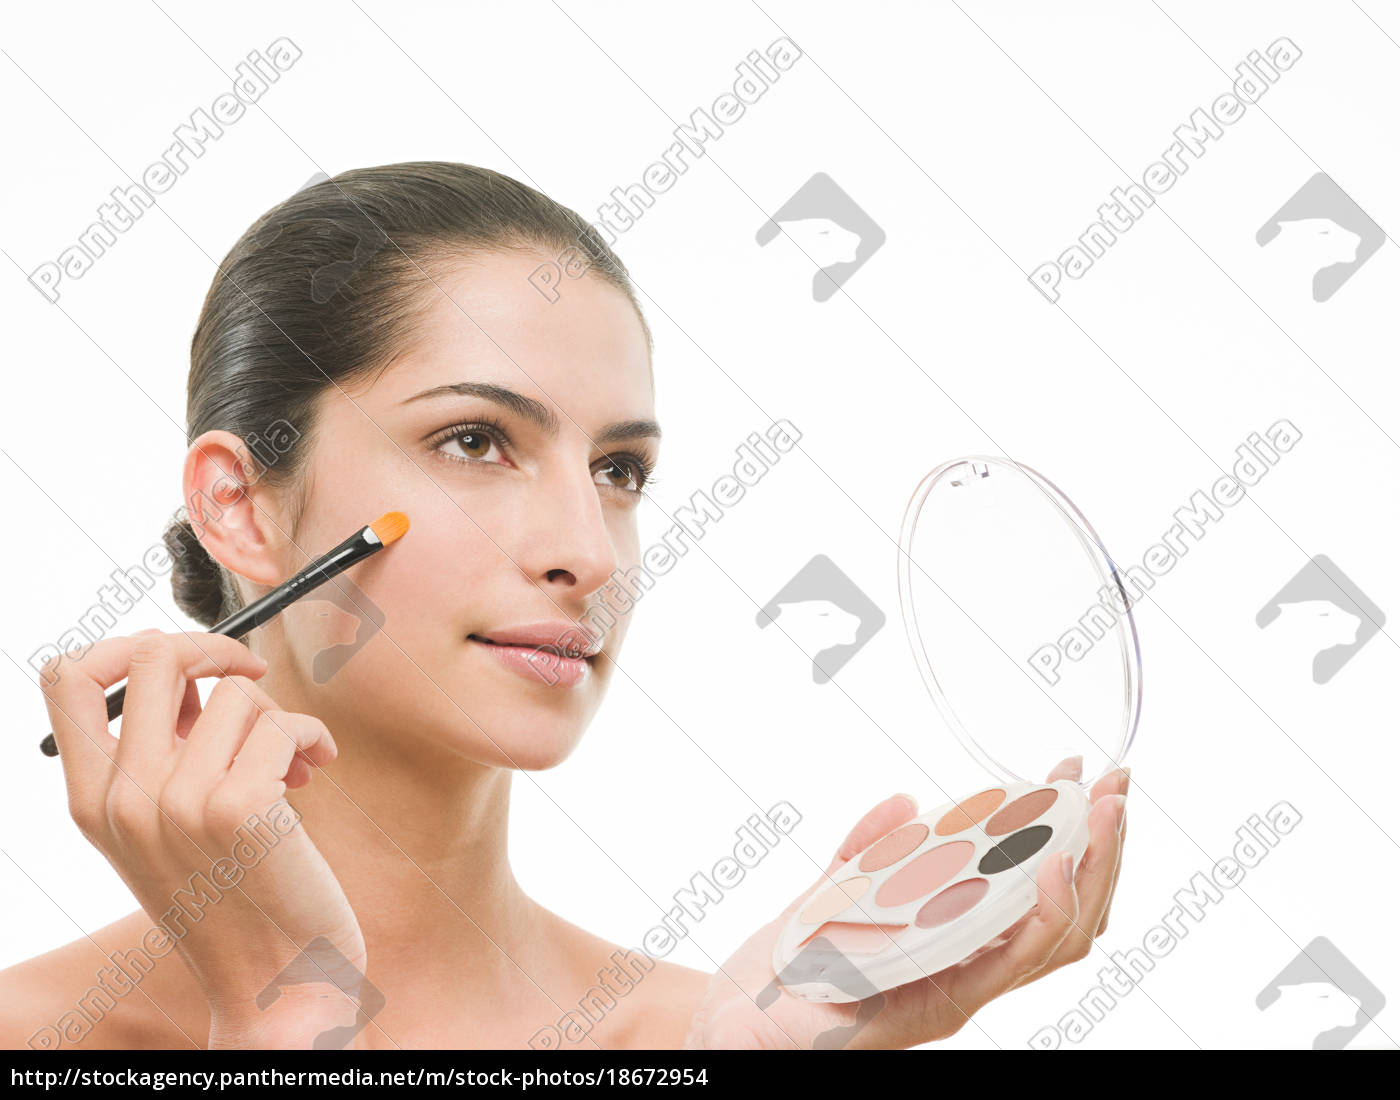 woman, applying, makeup - 18672954